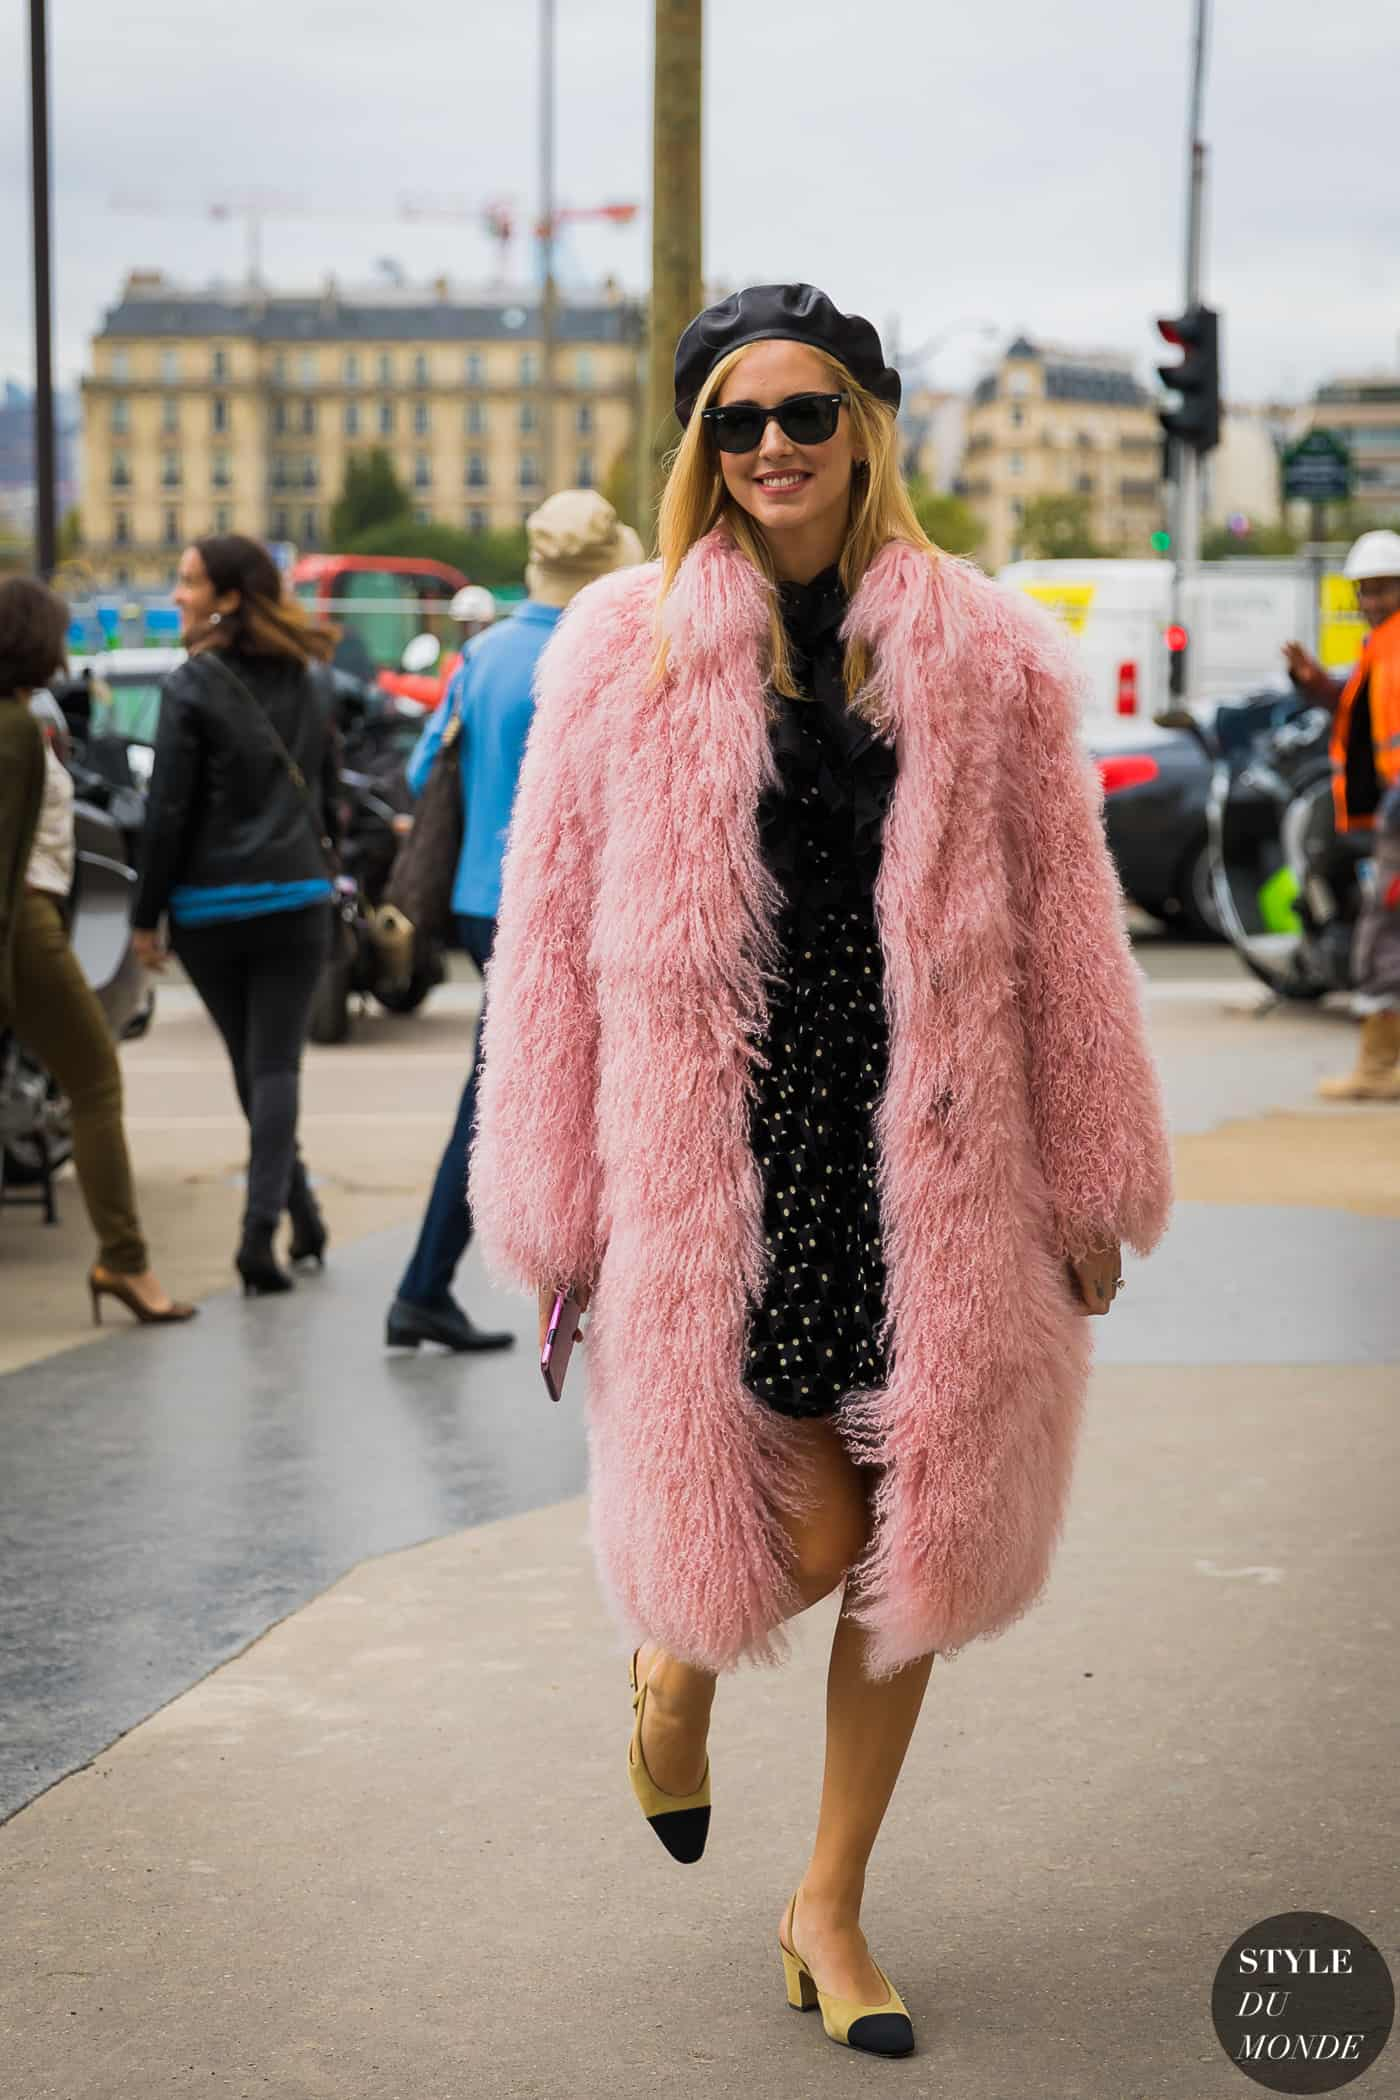 How To Wear FUR Coats This Season Without Looking Extra